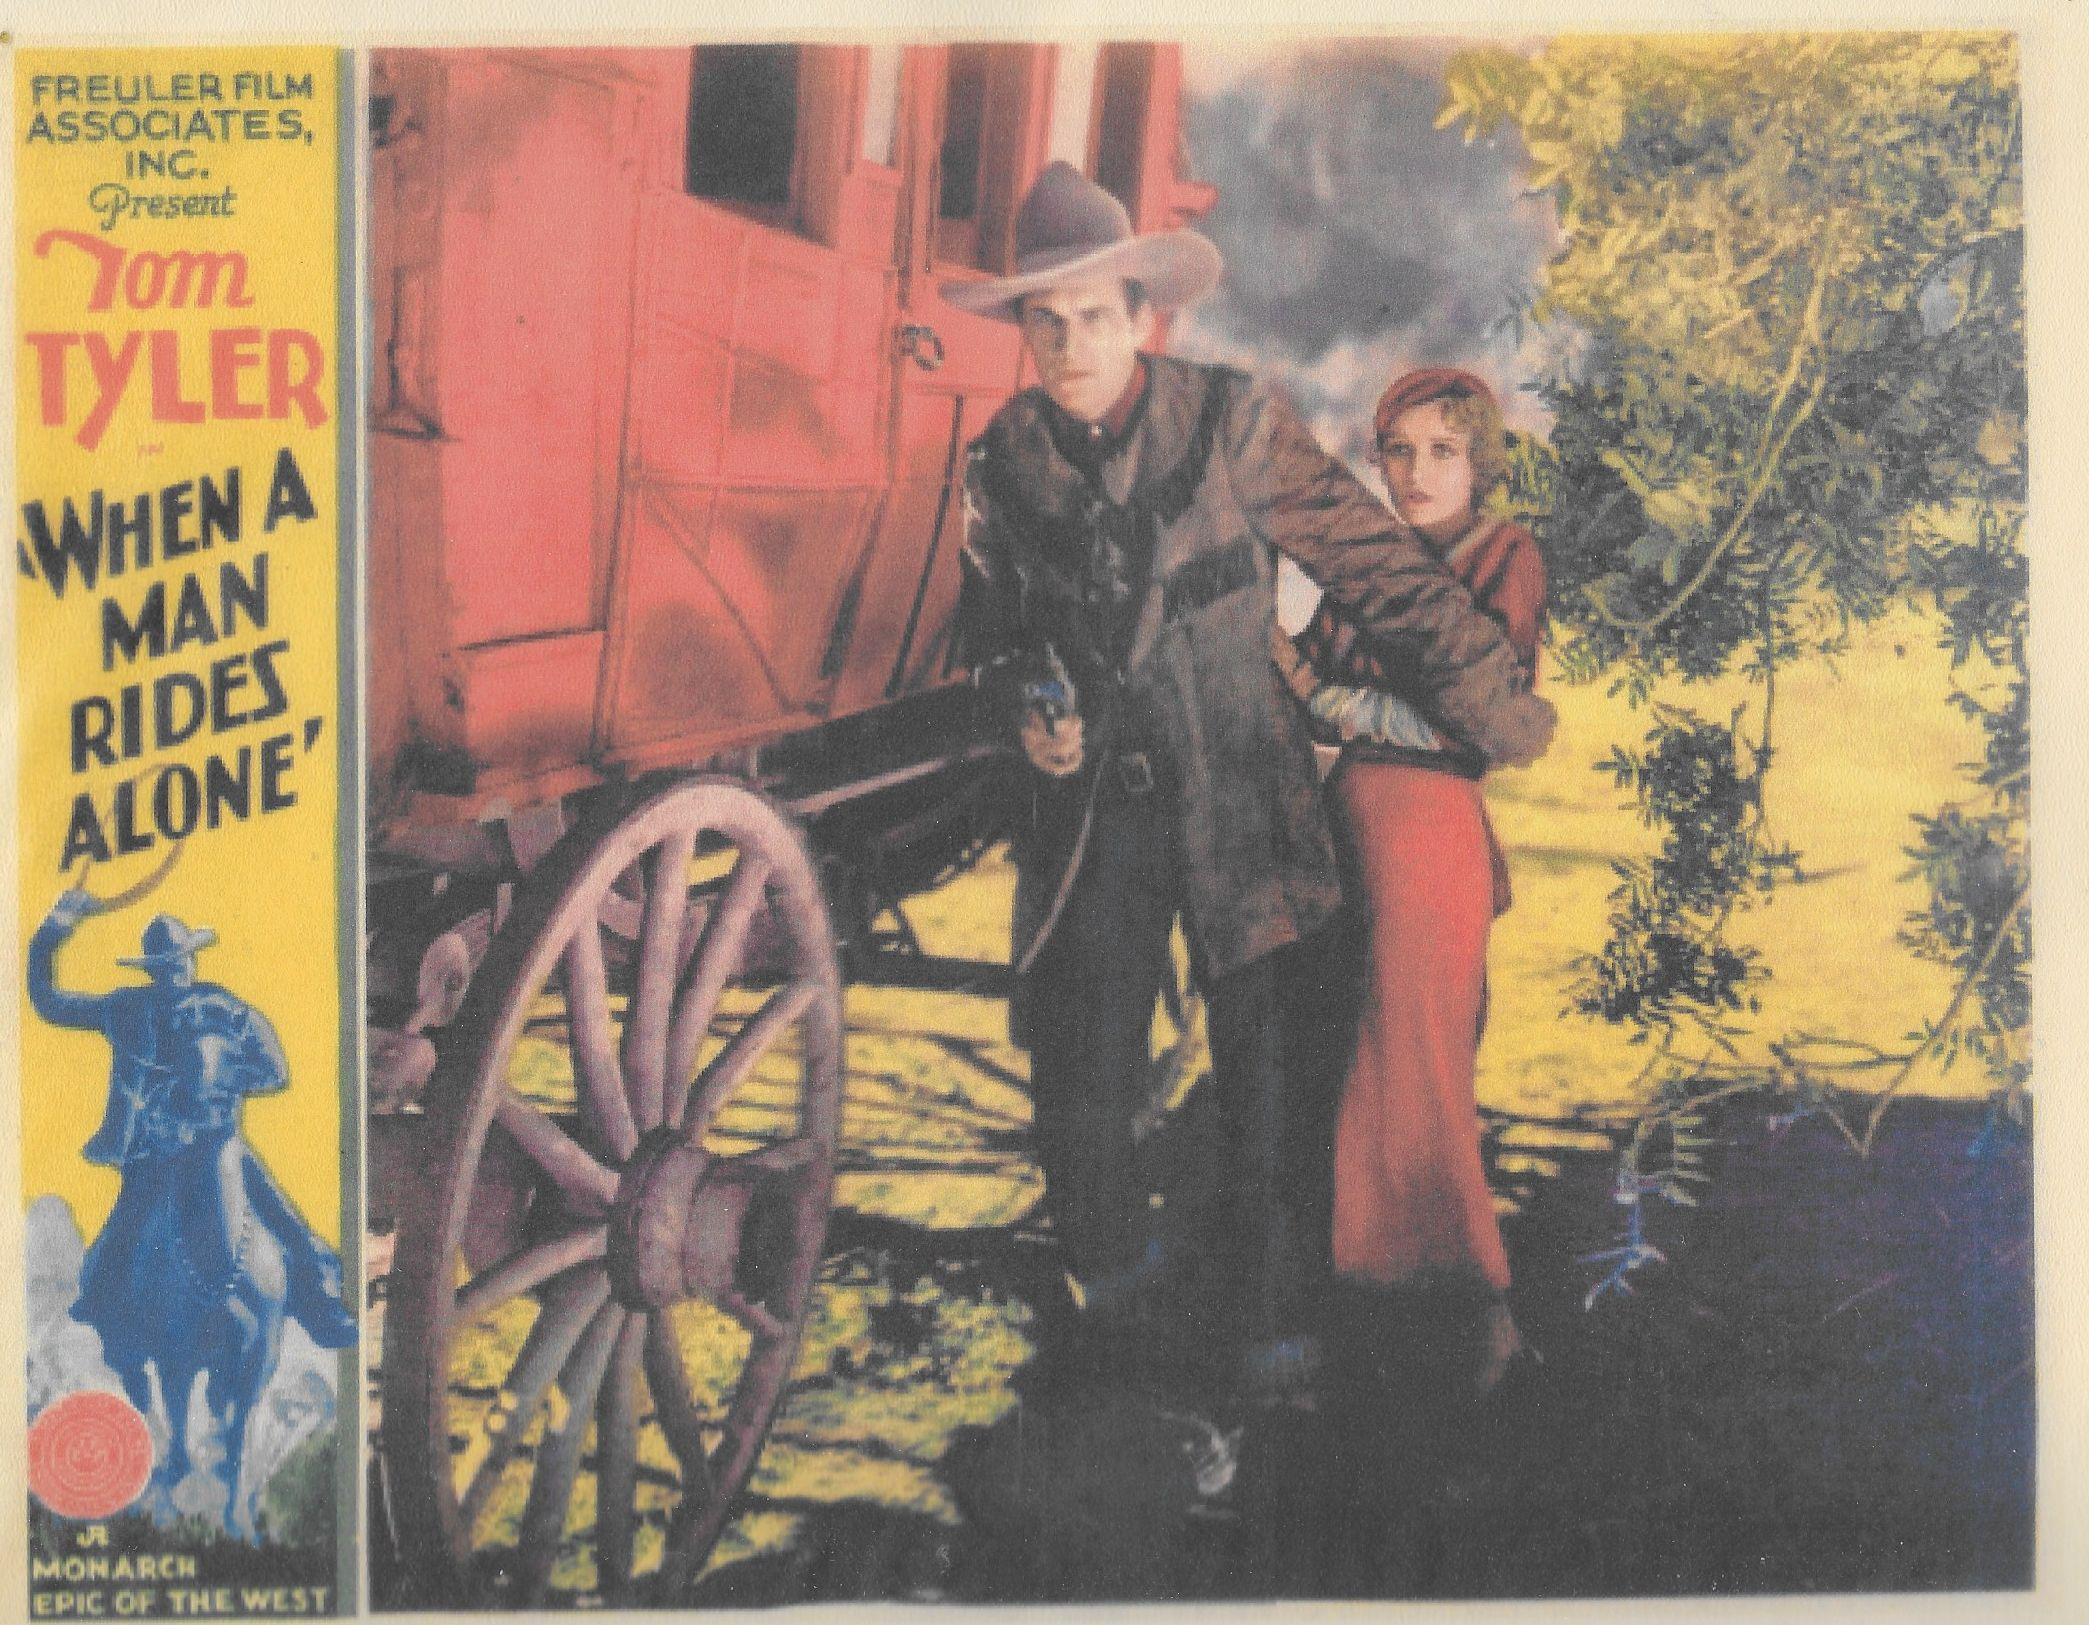 Adele Lacy and Tom Tyler in When a Man Rides Alone (1933)